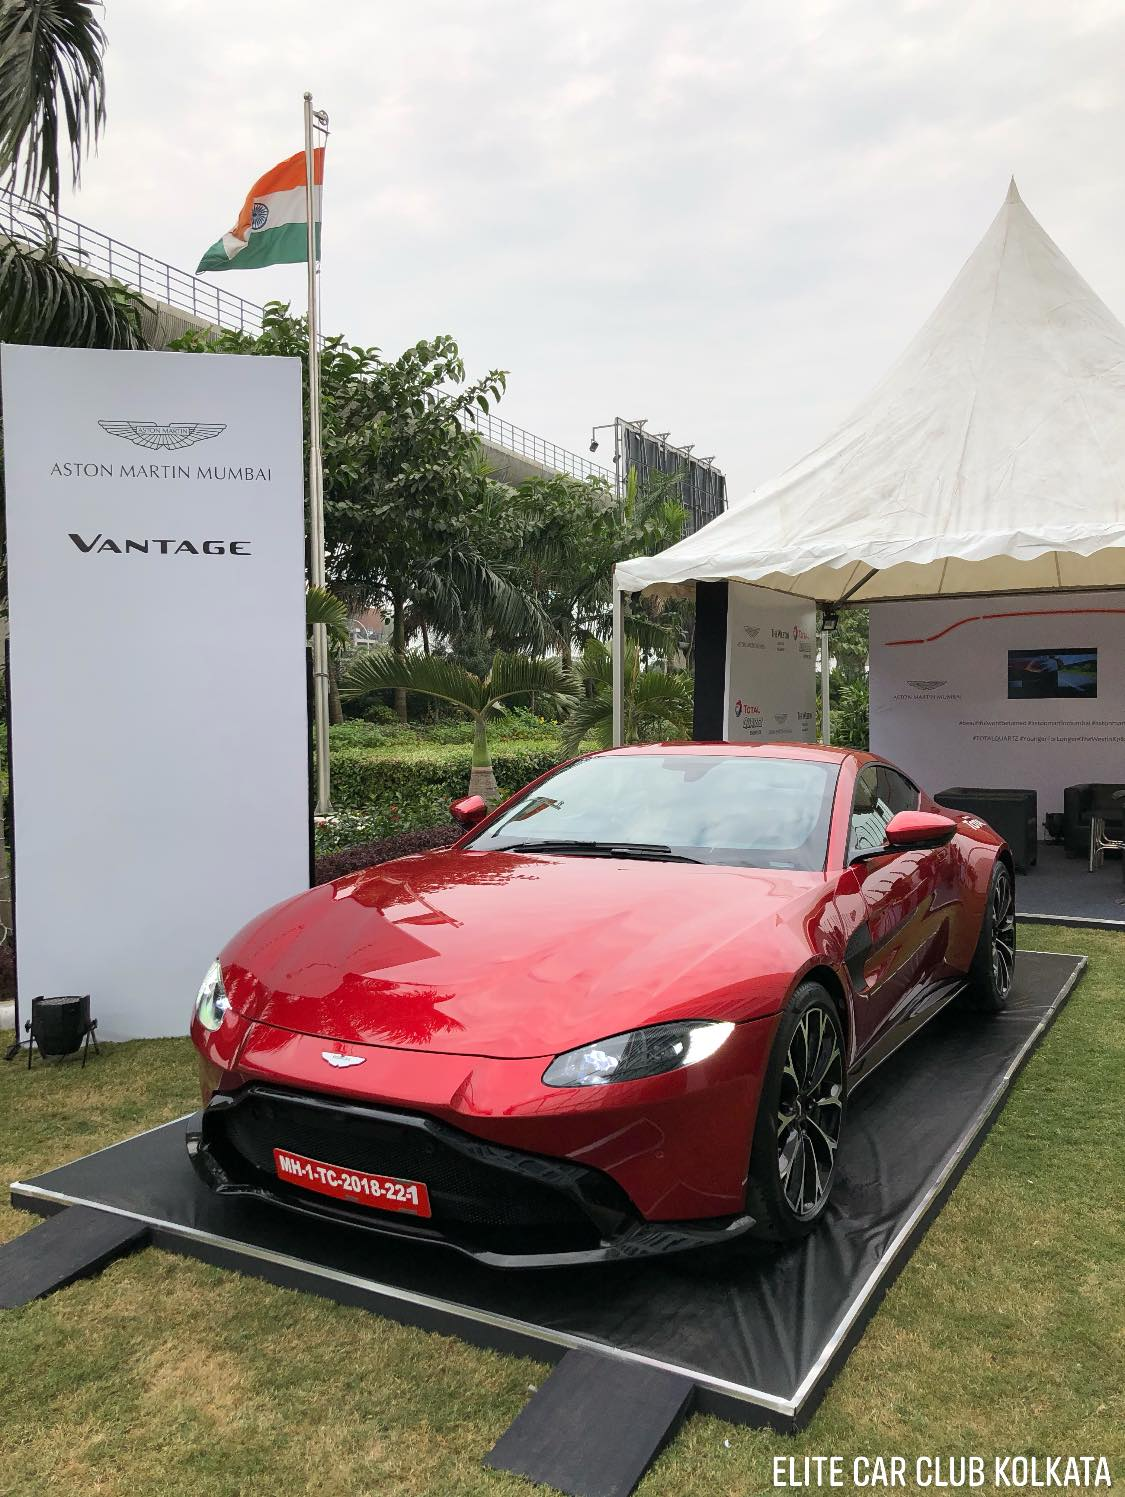 Aston Martin Vantage Launched In India At Inr 2 86 Crore